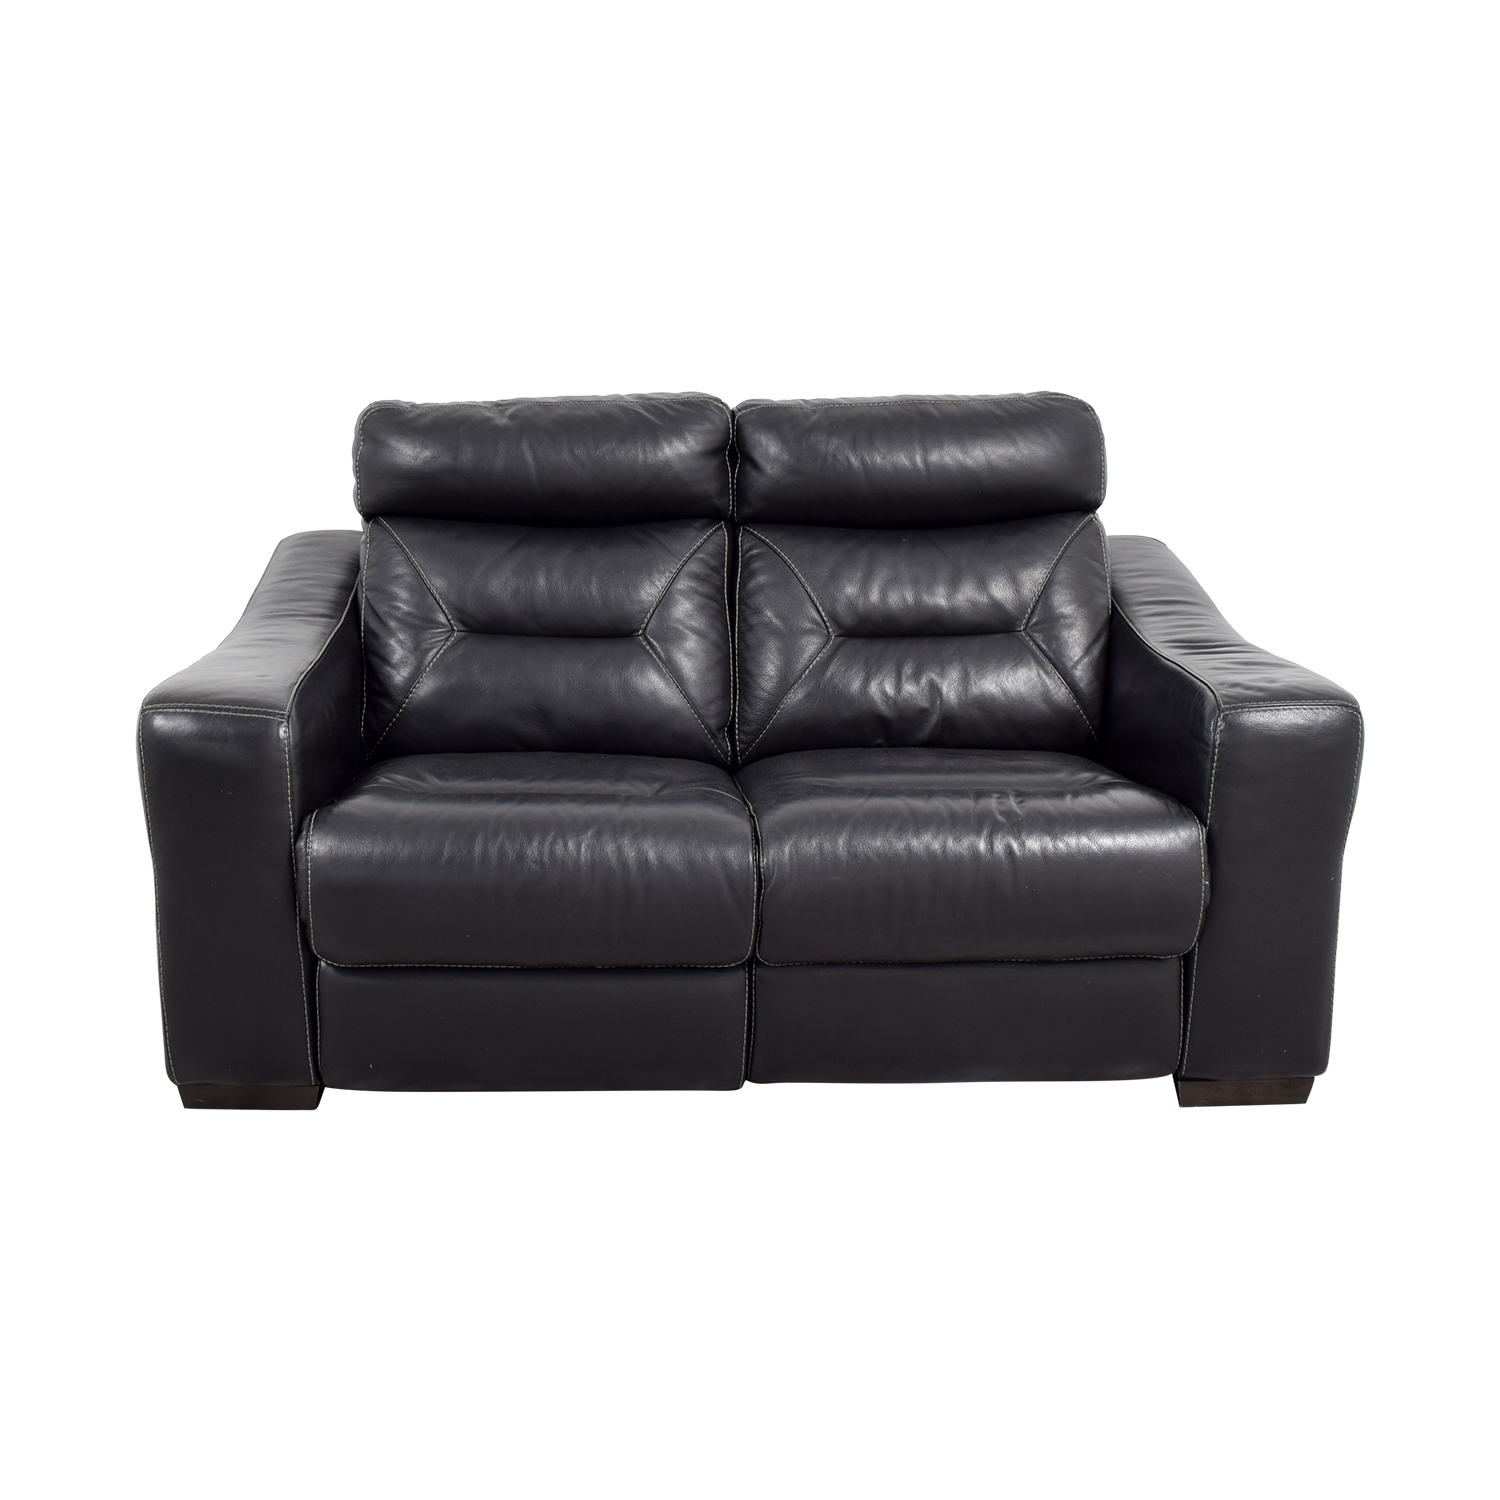 Macys Macys Black Leather Recliner Love Seat Recliners